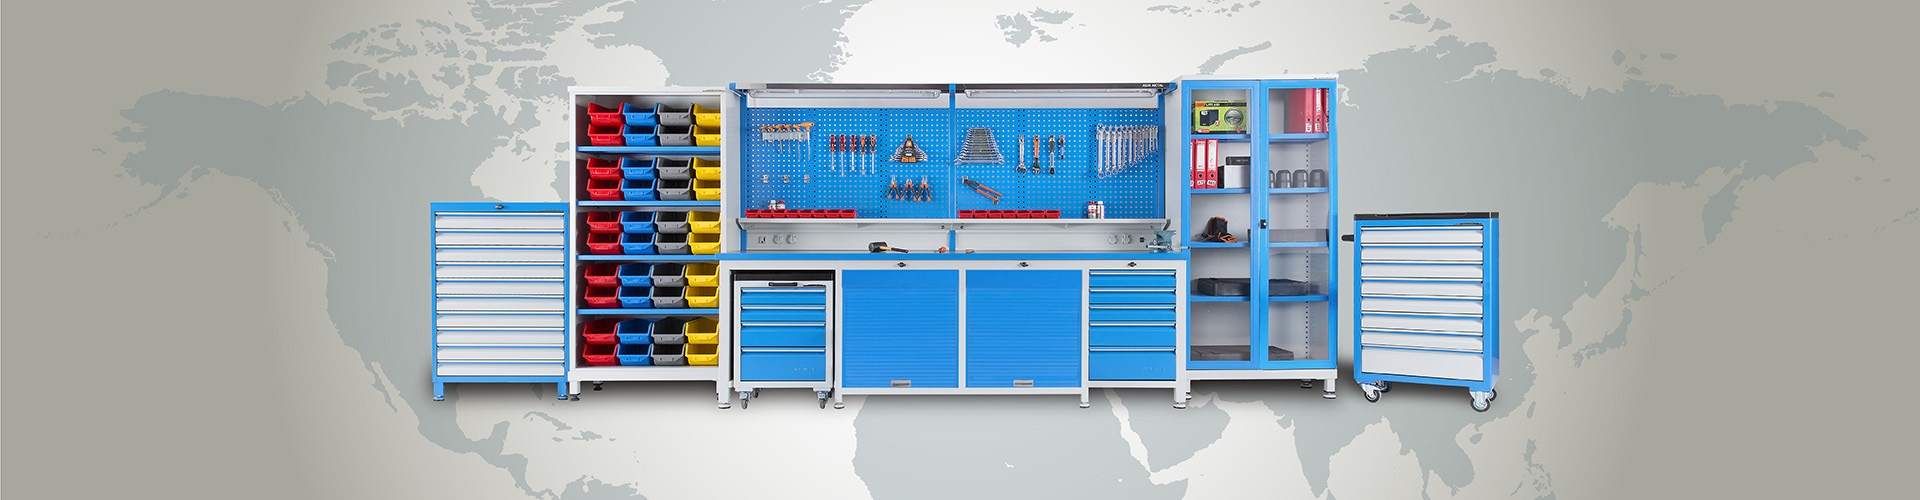 Indutrial Equipments by Metin AKIN Metal ; Workbenches, Trolleys, Cabinets, Drawer Cabinets, Lockers and other...